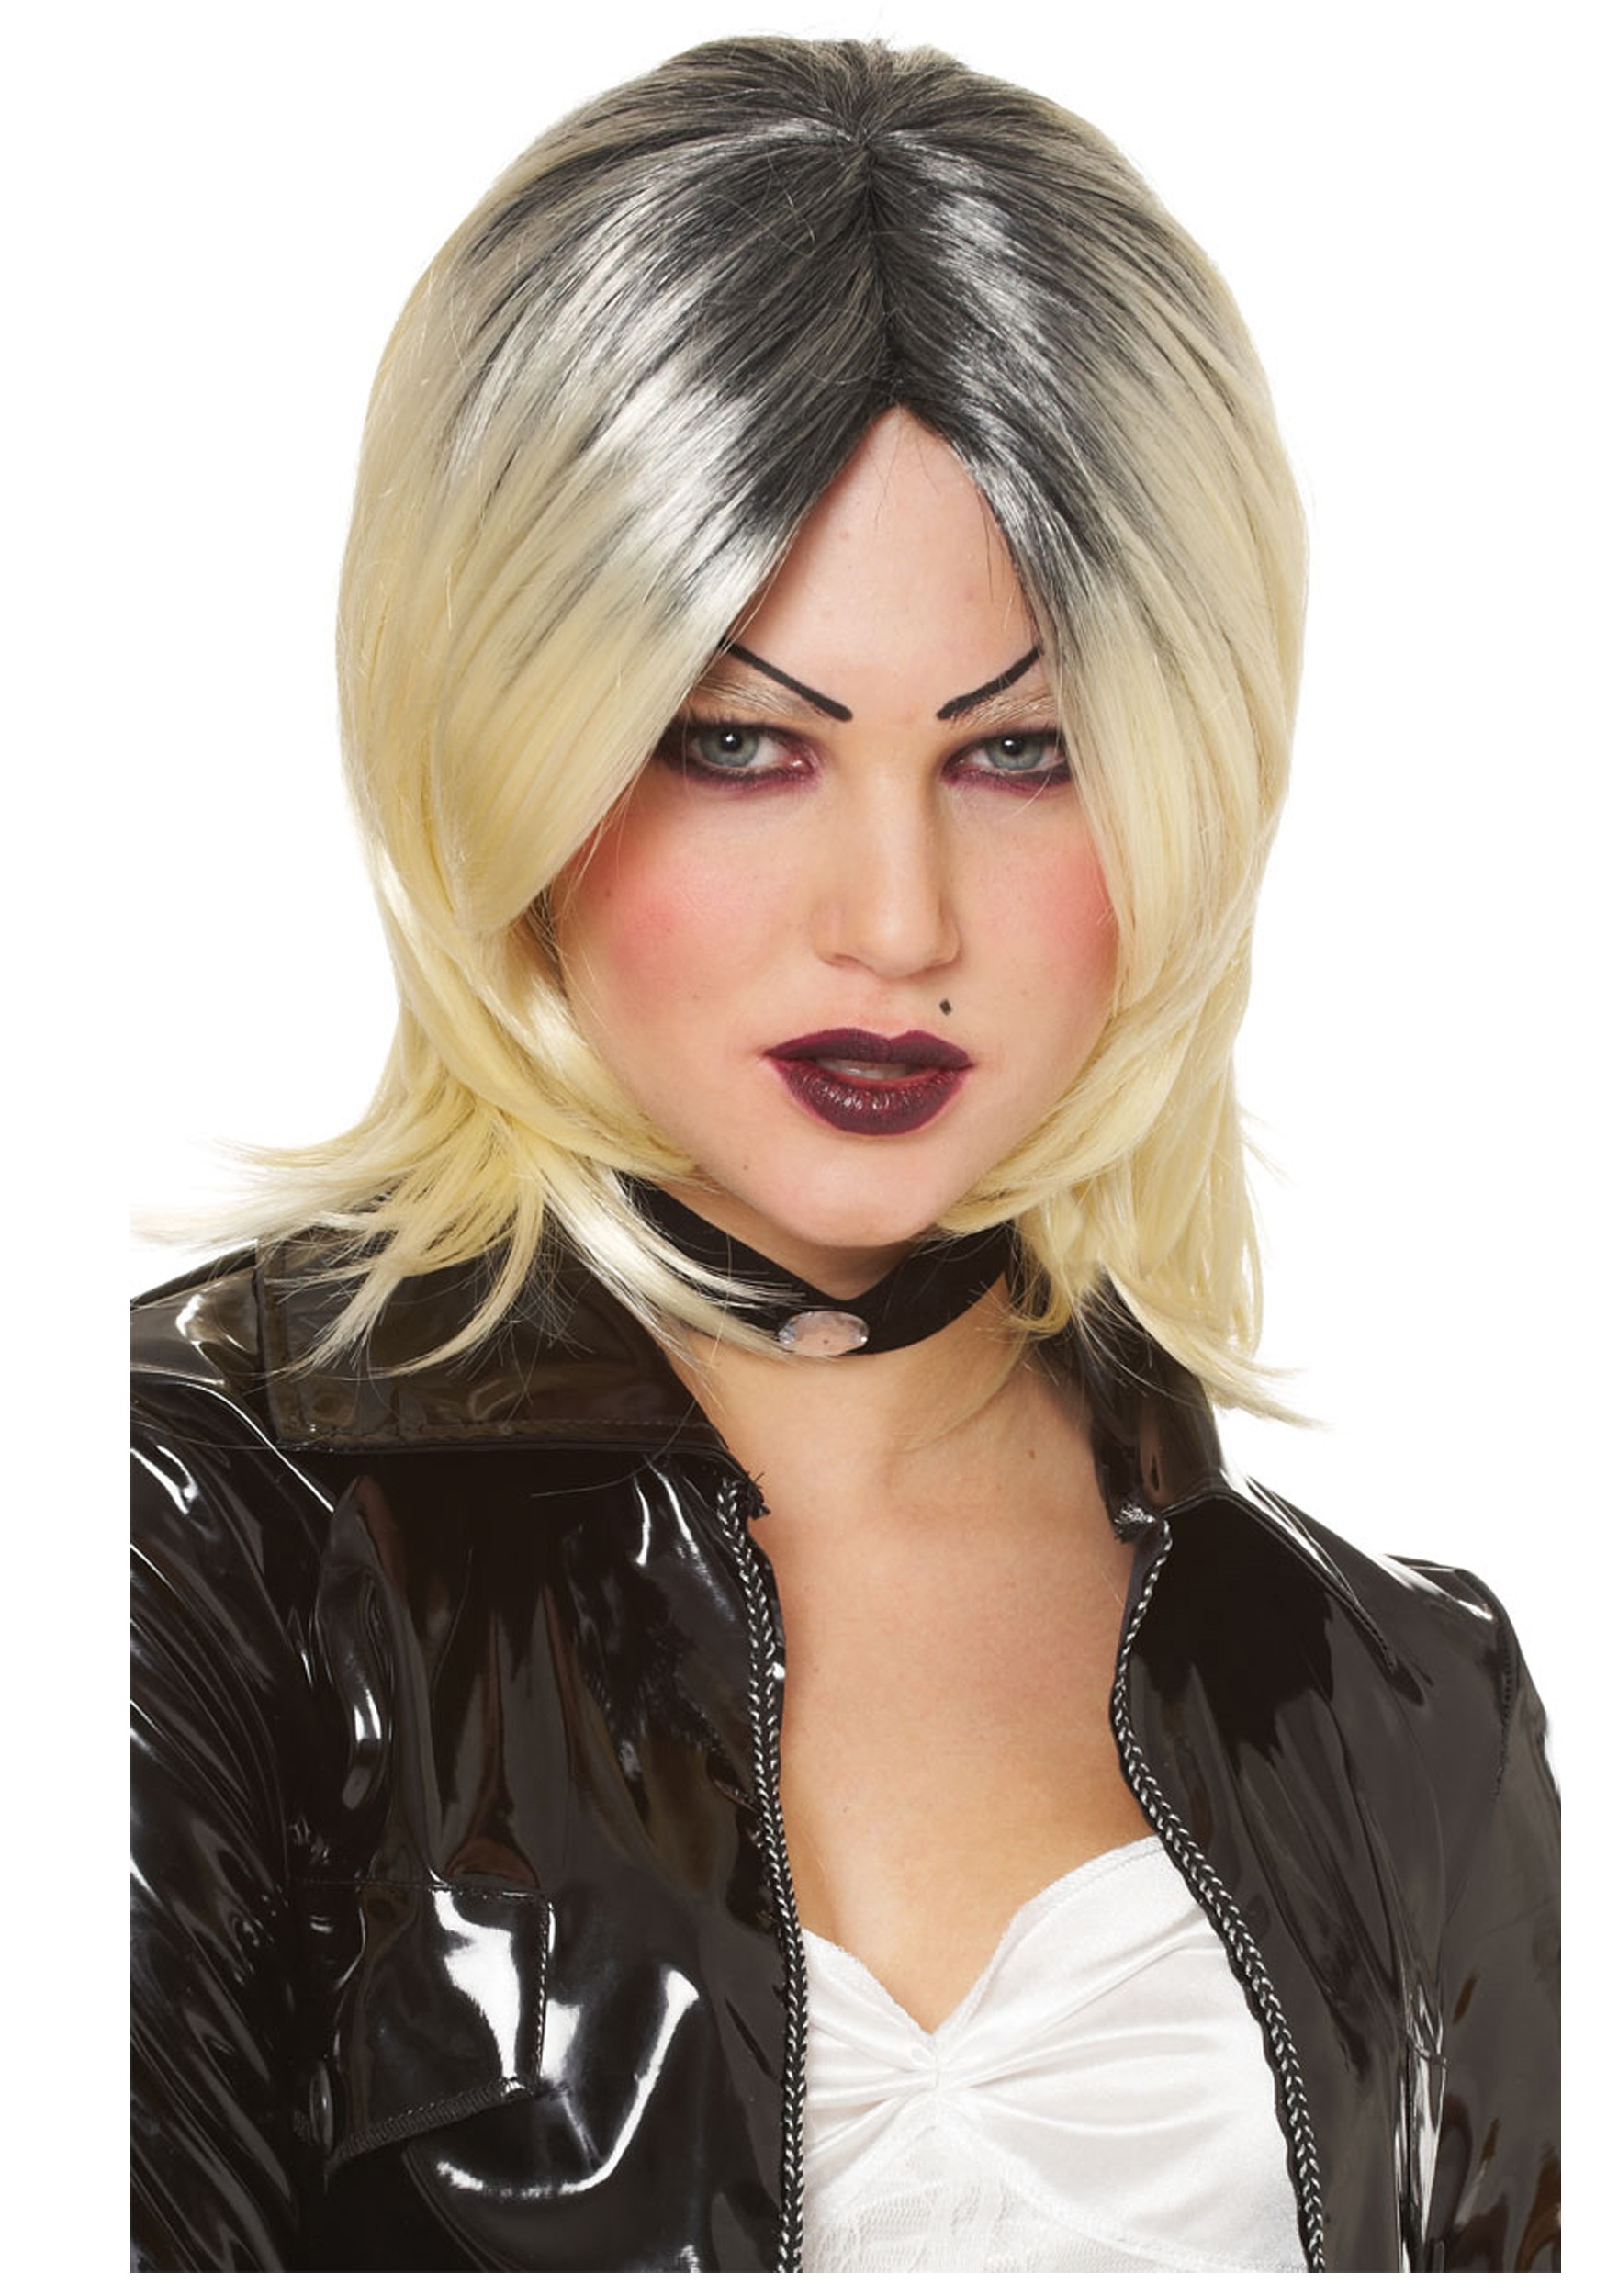 Tiffany Bride Of Chucky Costume http://kootation.com/tiffany-bride-of-chucky-costume.html